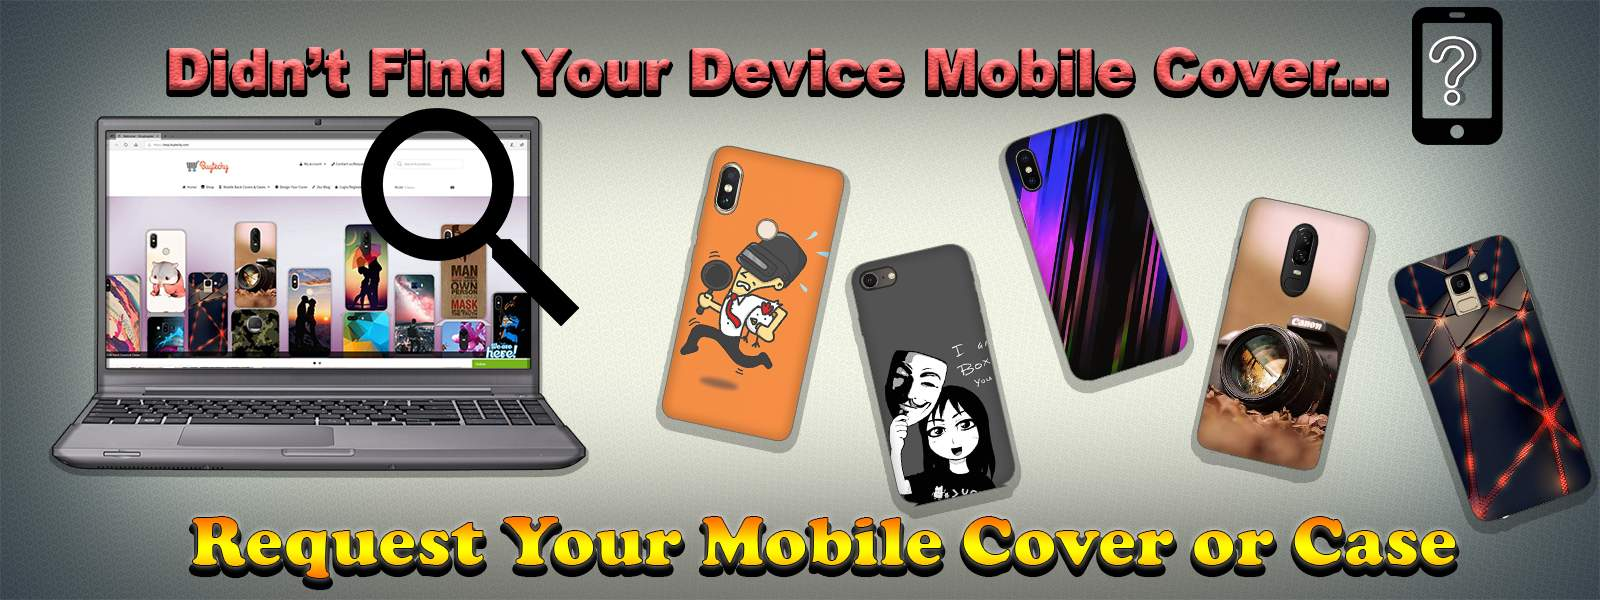 Request Your Mobile Cover or Case